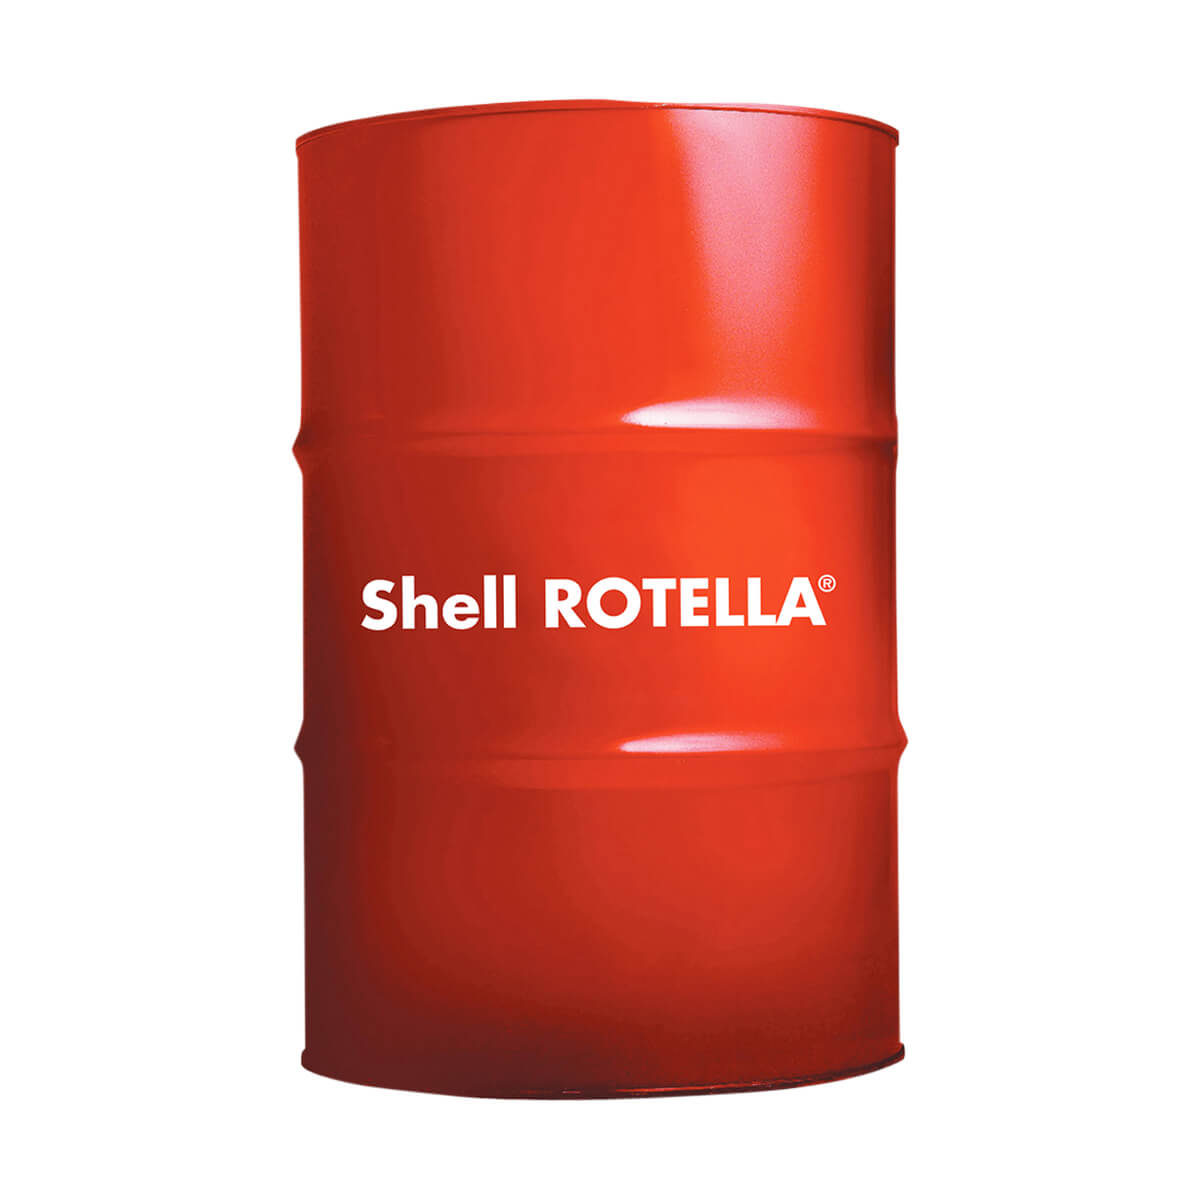 Shell Rotella T6 Triple Protection Synthetic 5W-40 - 208 L